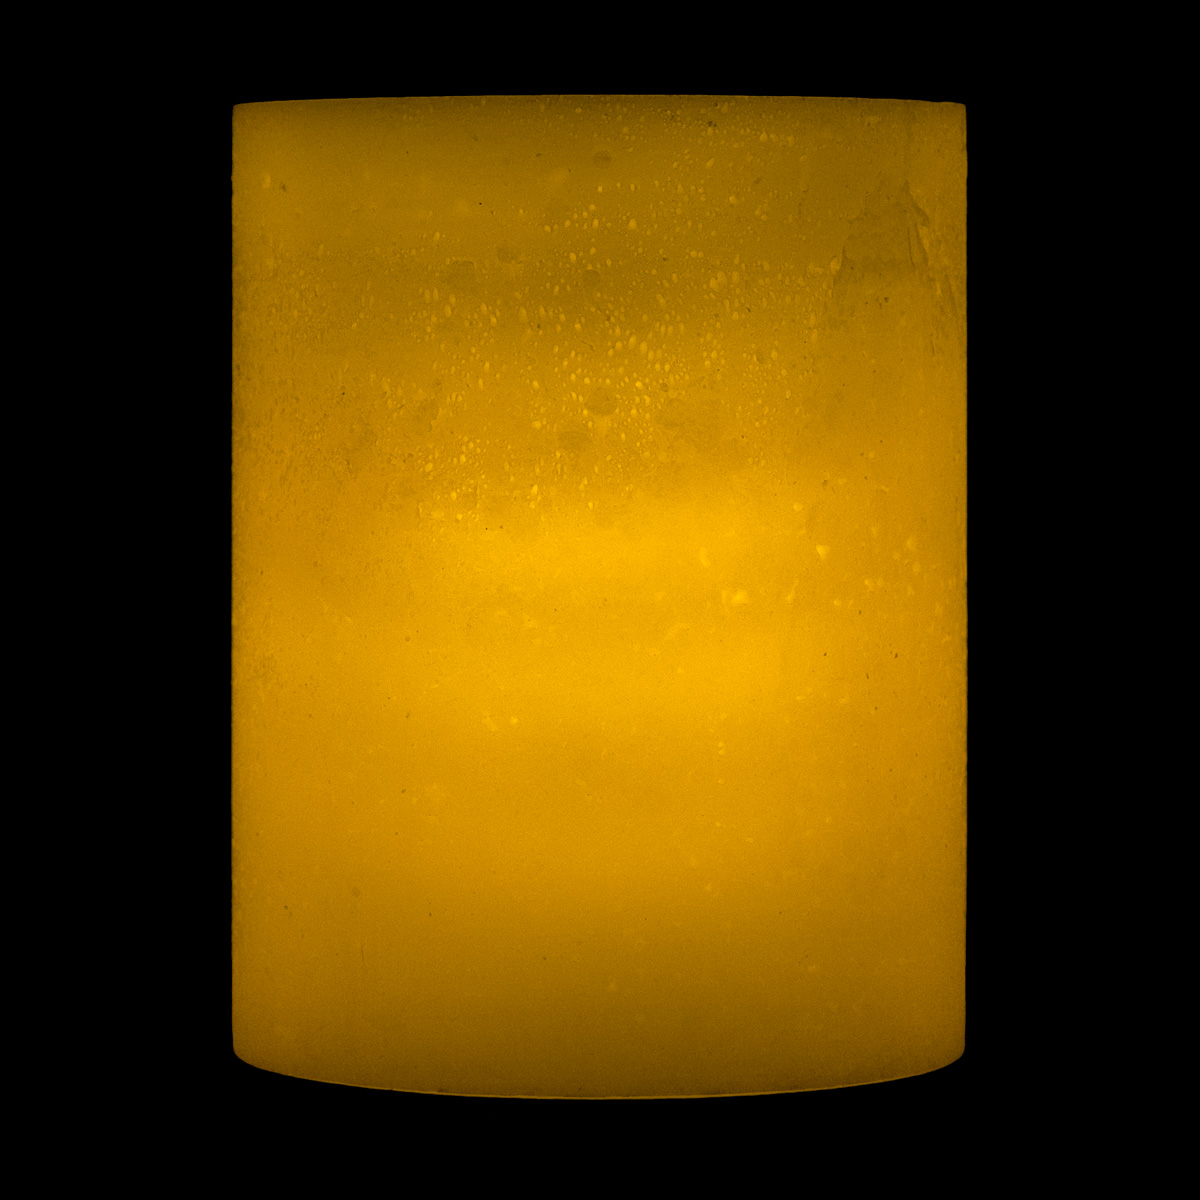 8x14 Ivory Round Led Extra Large Flameless Pillar Candles